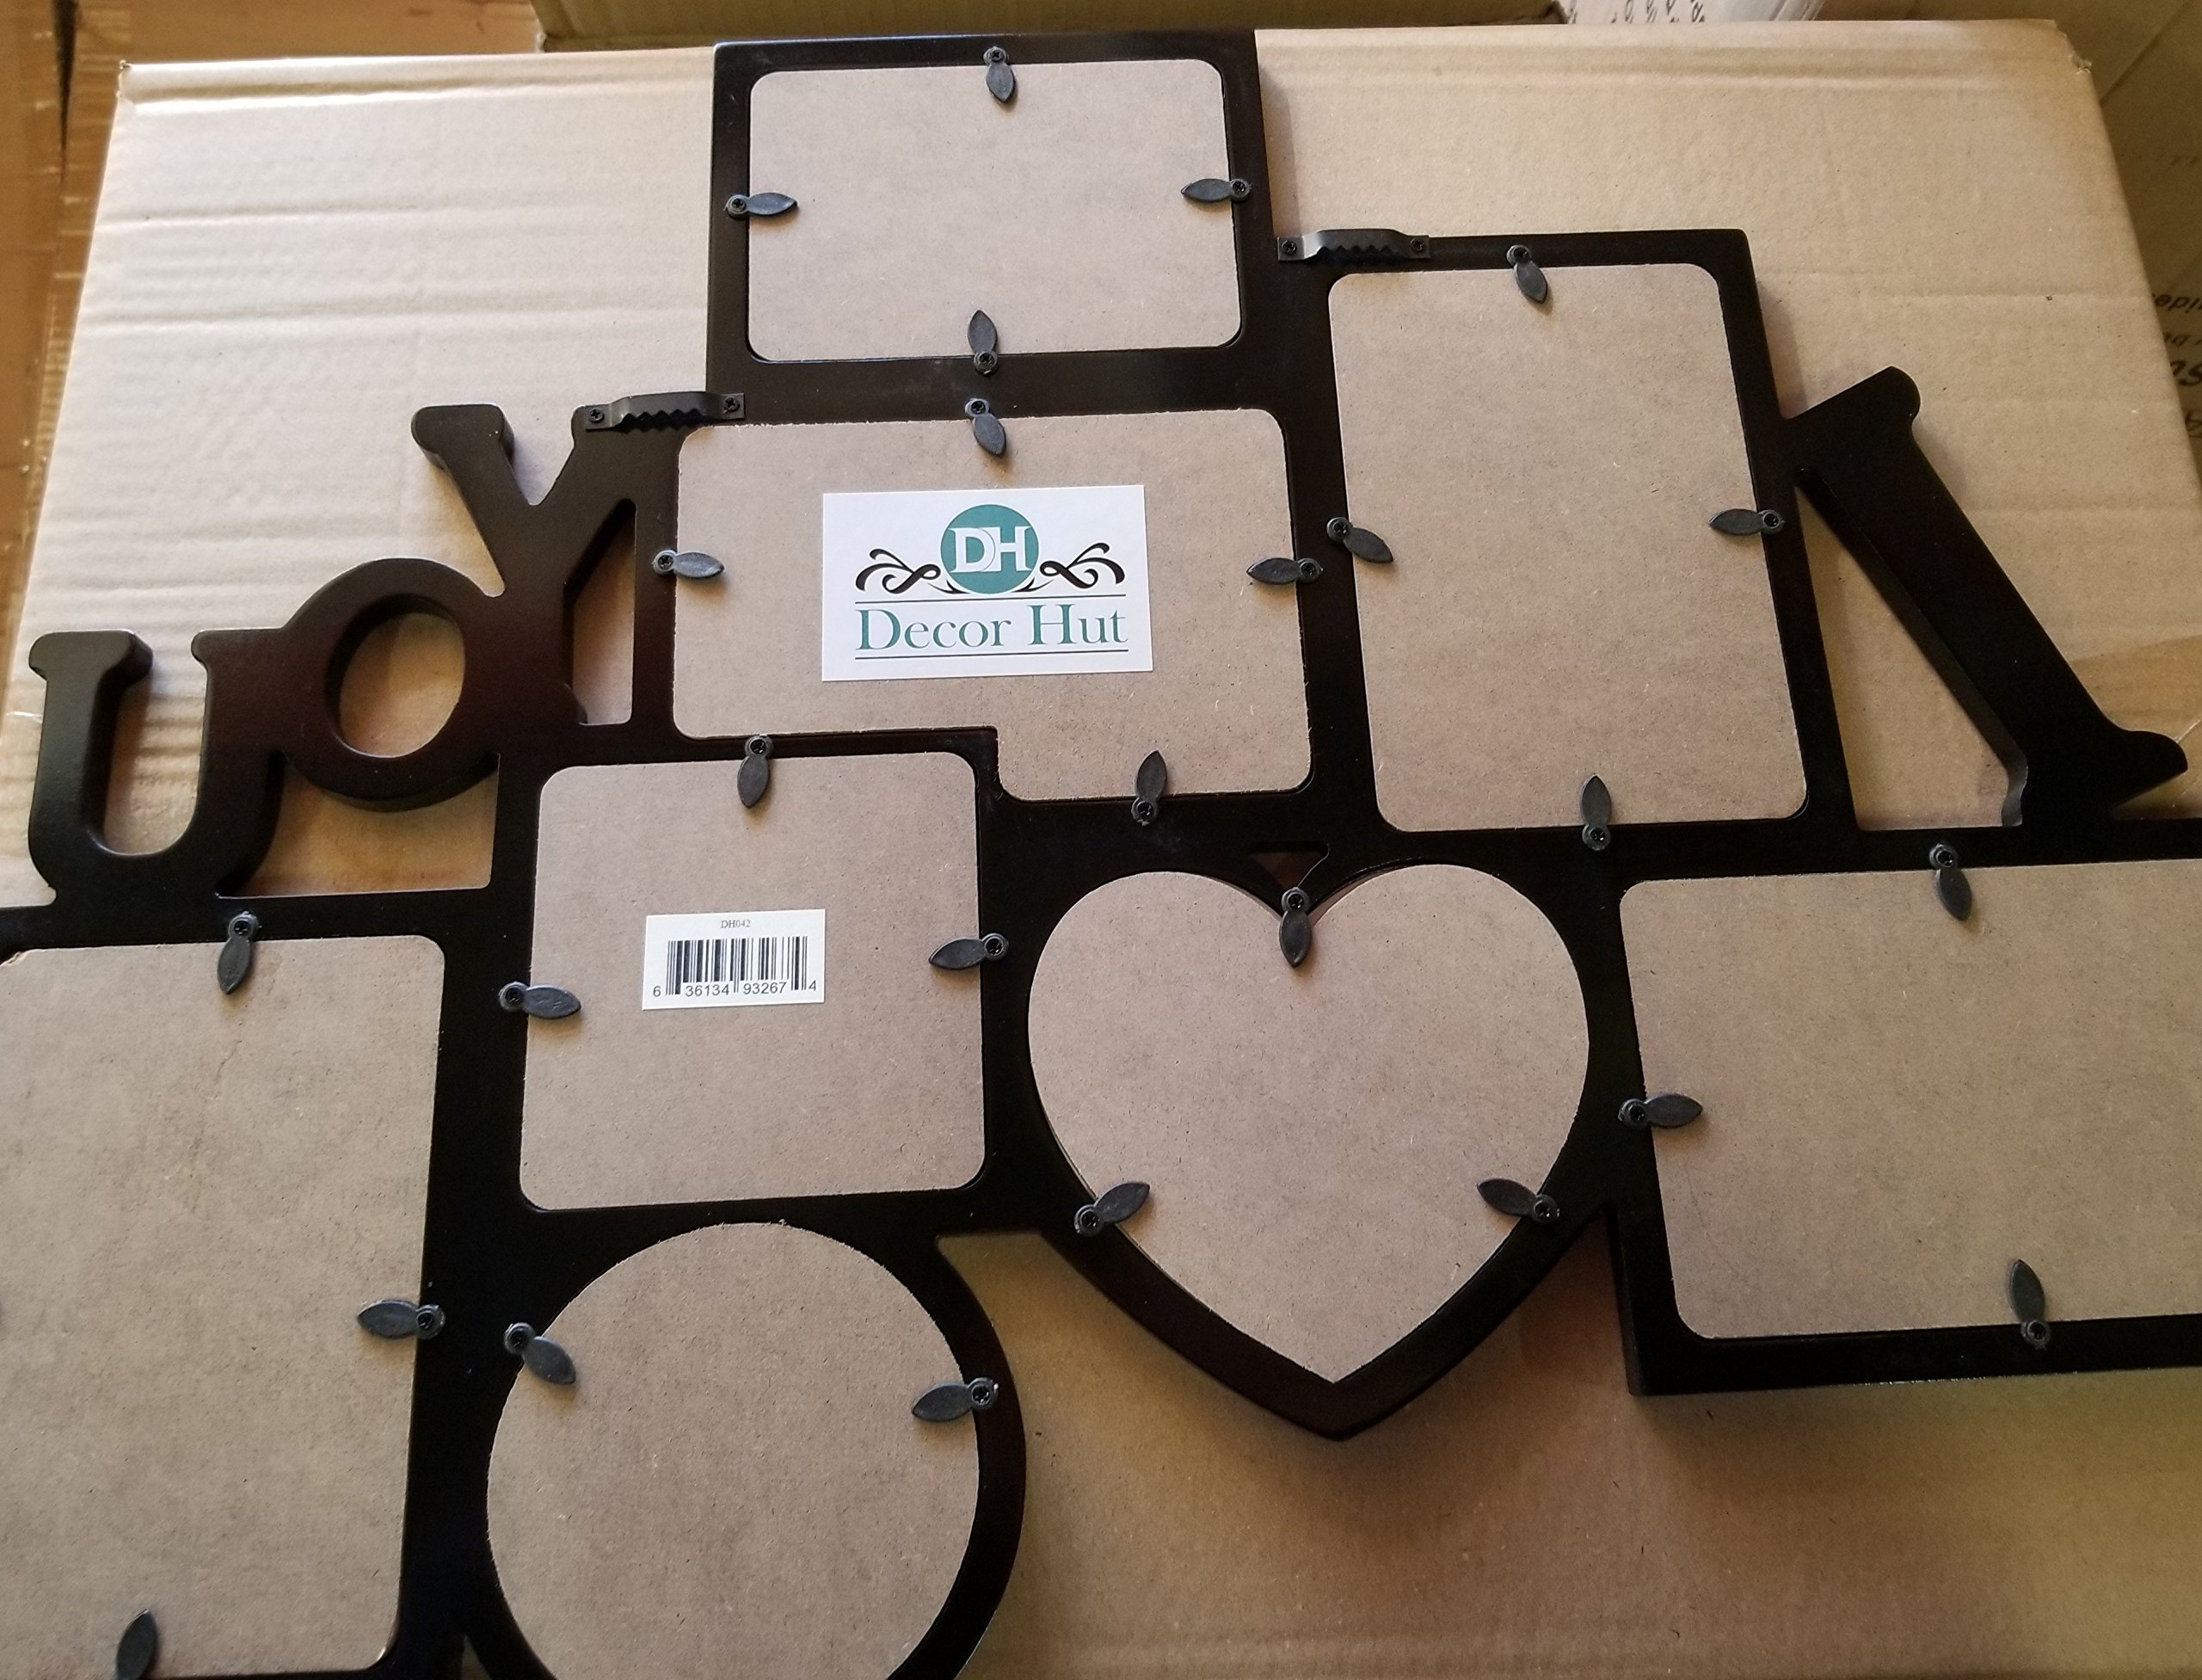 Decor Hut I Love You Picture frame Puzzle Collage Frame, Holds 8 Photos, Easy to Hang, Black Nice Finish! Memory Keepsake! by Decor Hut (Image #3)